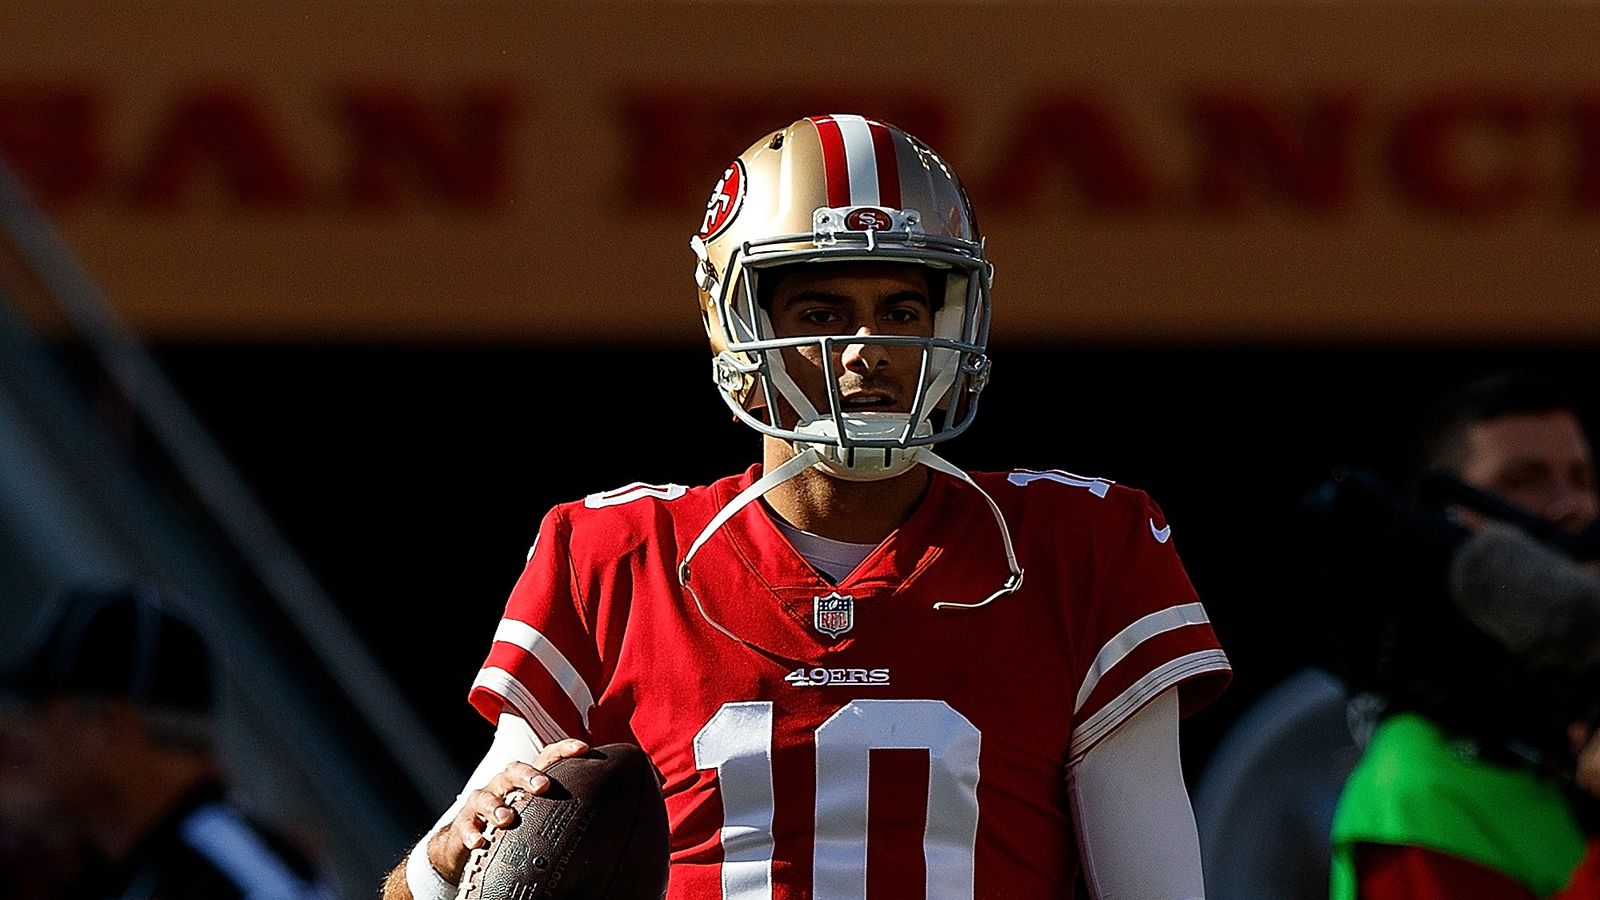 Jimmy G Niners >> Do you think Jimmy Garoppolo will throw for over 4,500 yards? - Niners Nation